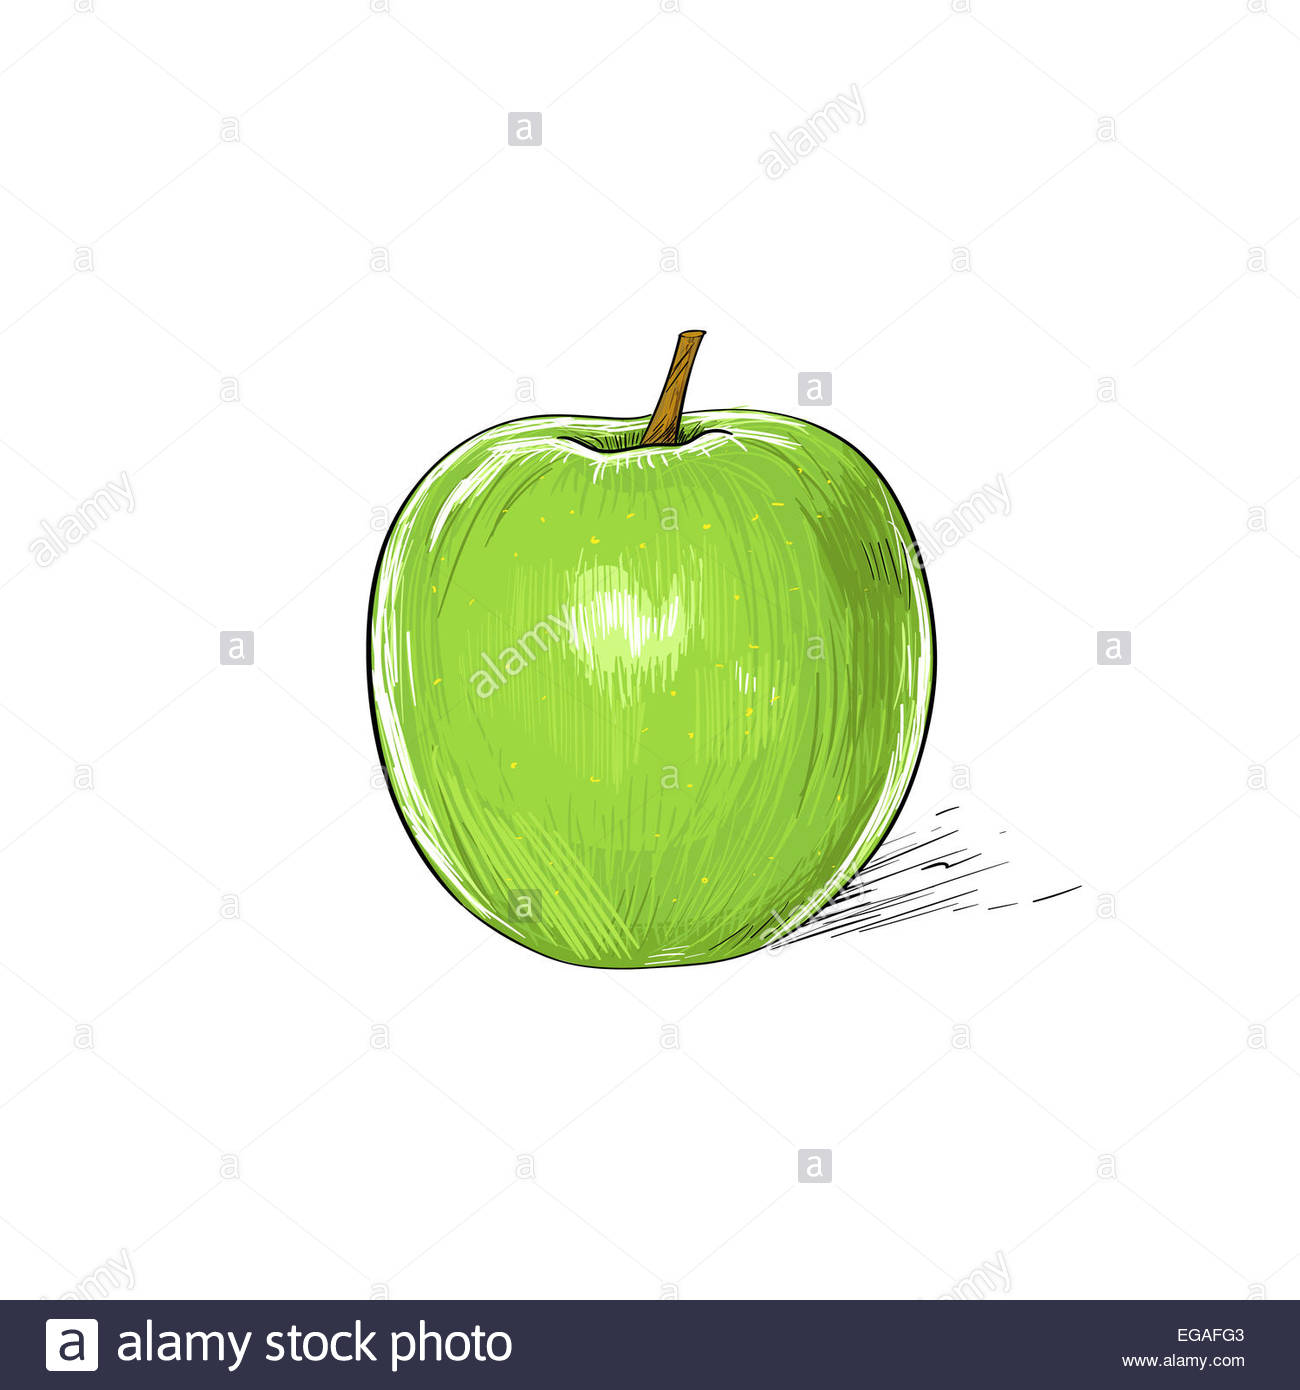 1300x1390 Green Apple Sketch Draw Isolated Over White Stock Photo 78907699